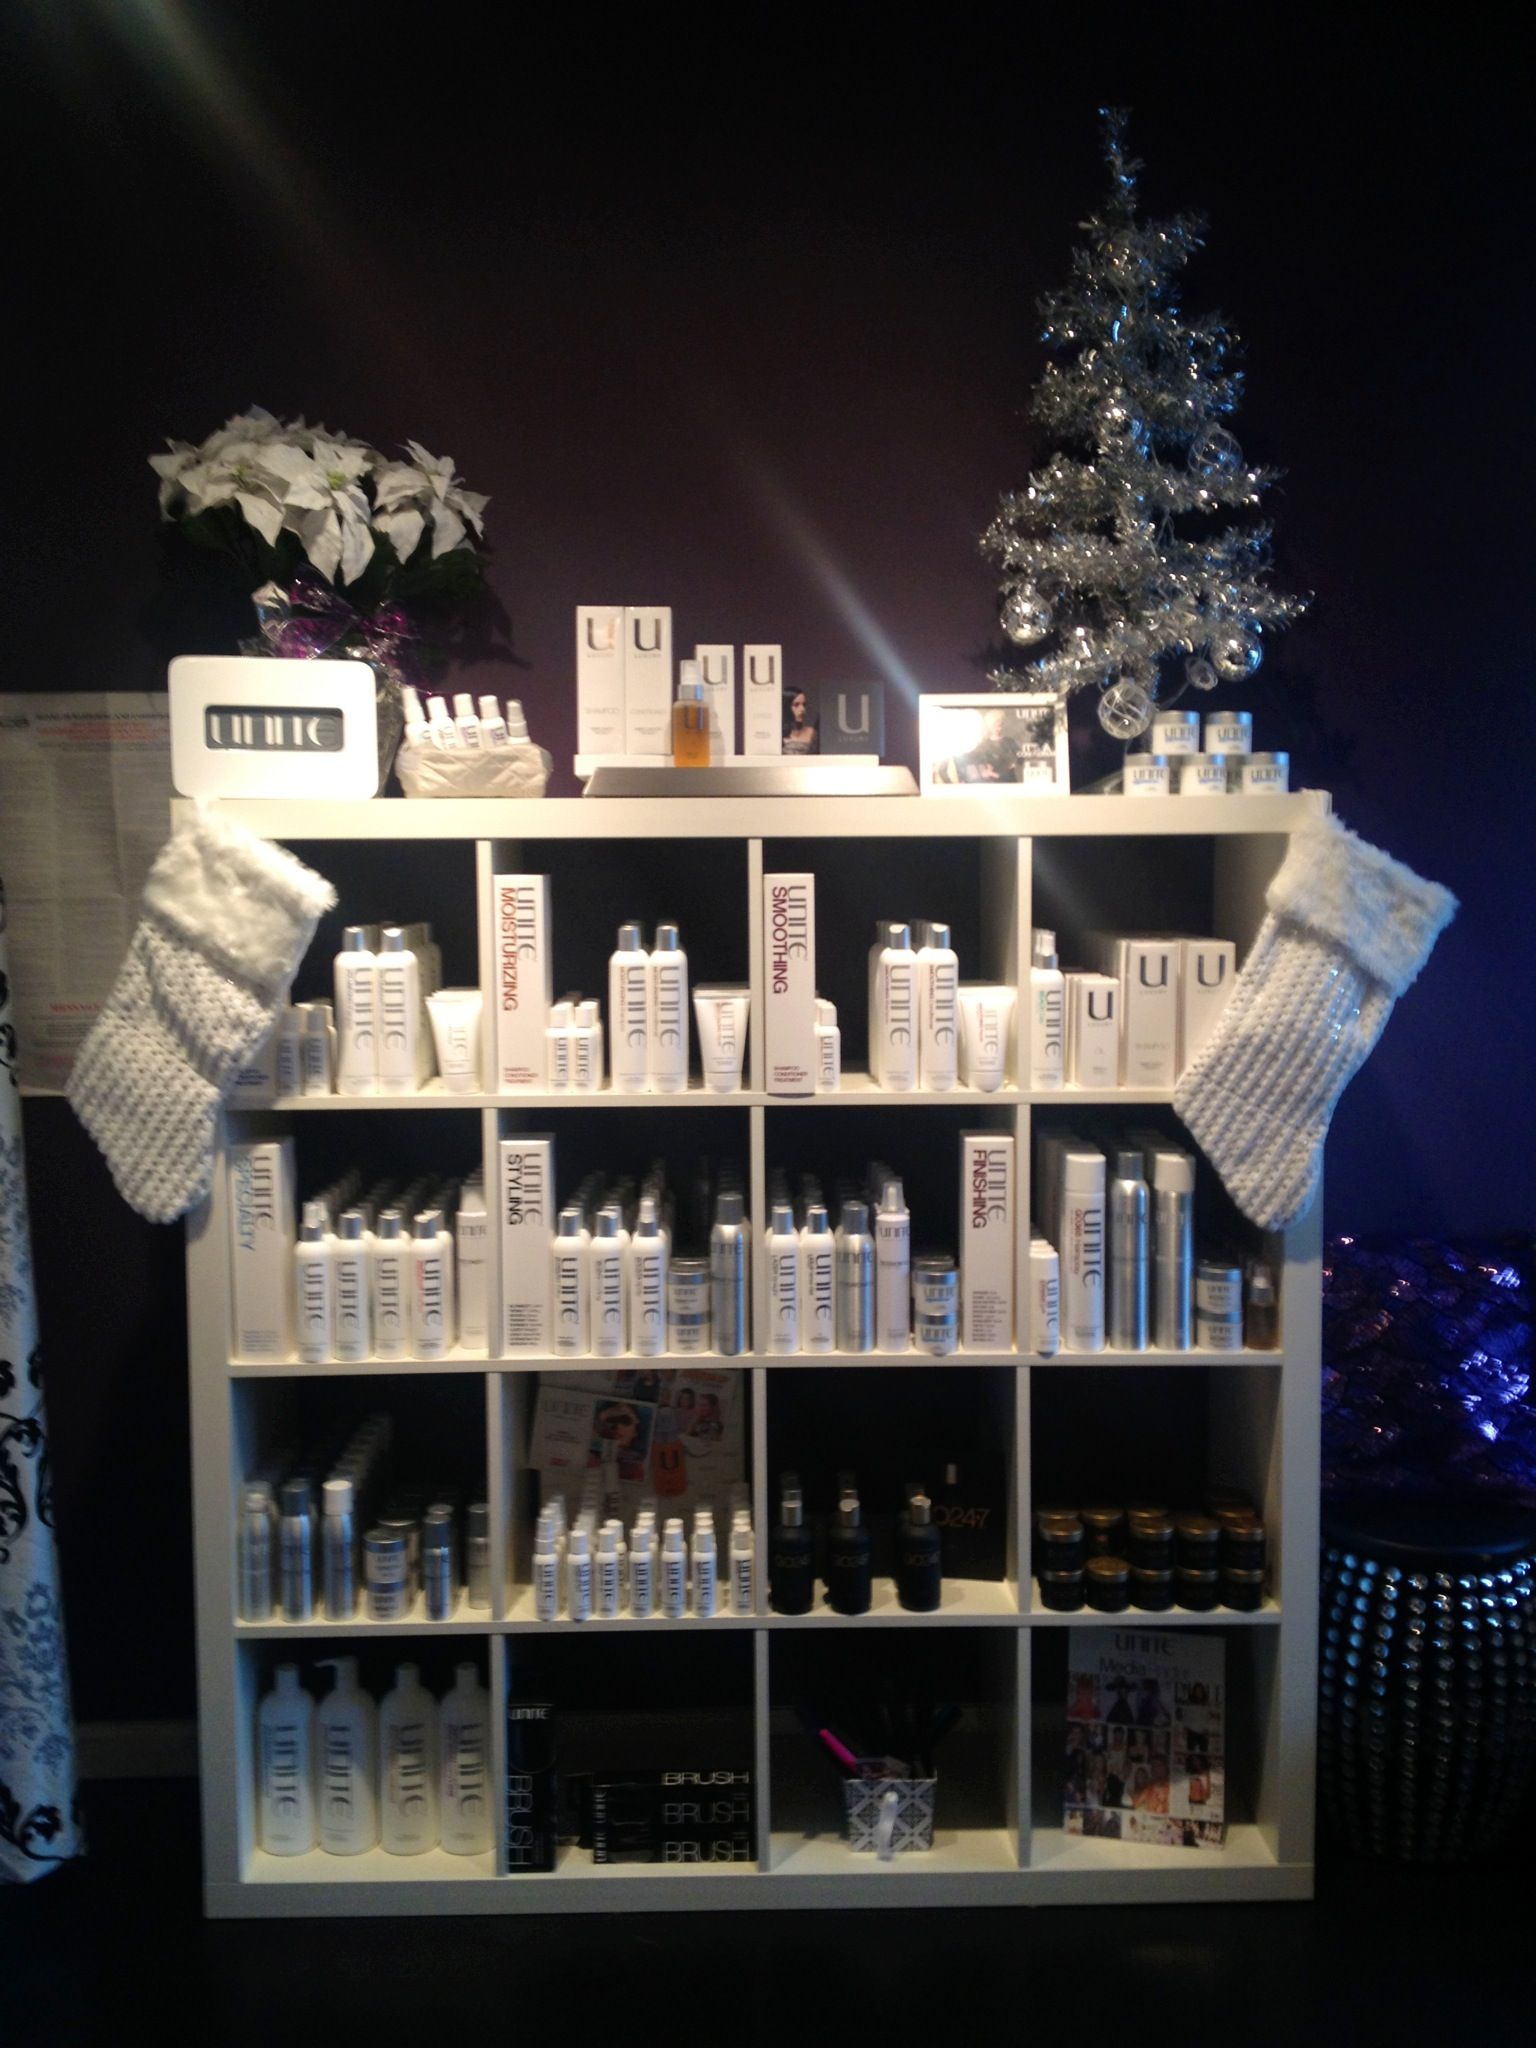 UNITE Hair Care - Professional Salon Systems  Spa holiday